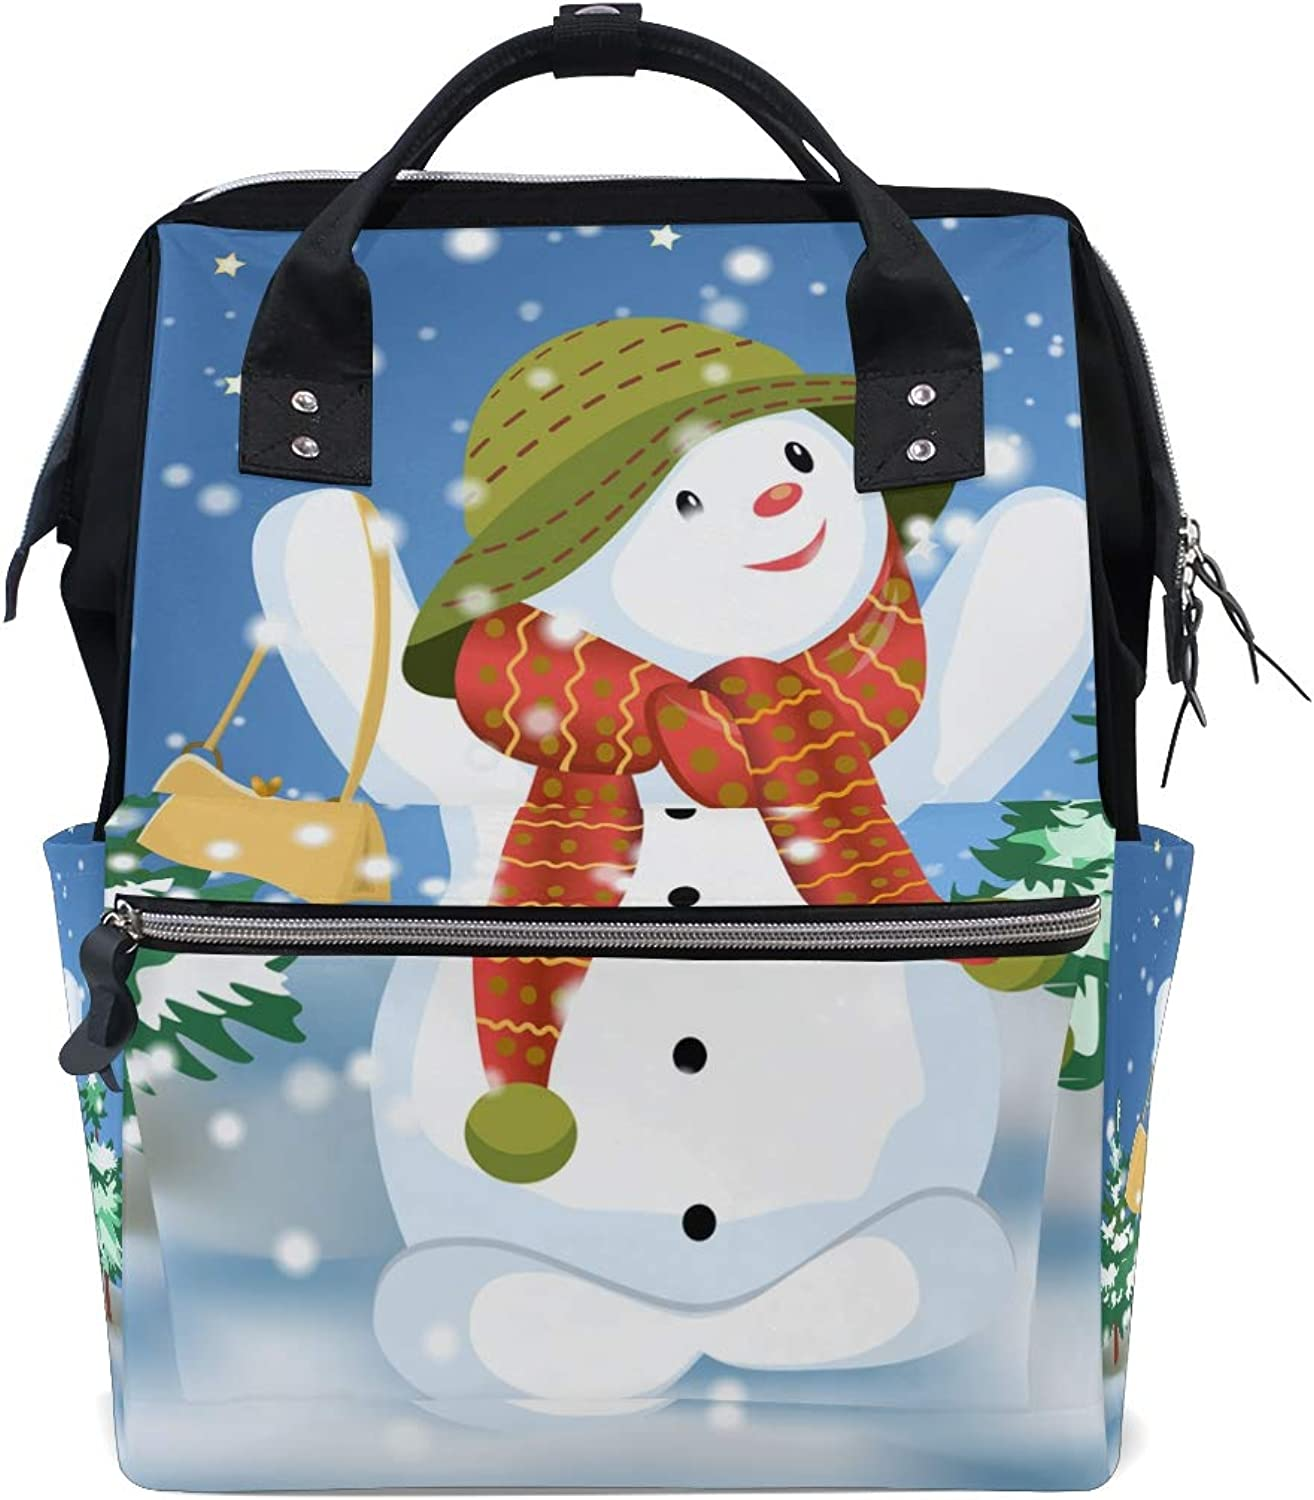 ColourLife Diaper bag Backpack Cute Snowman With Bag Tote Bag Casual Daypack Multifunctional Nappy Bags